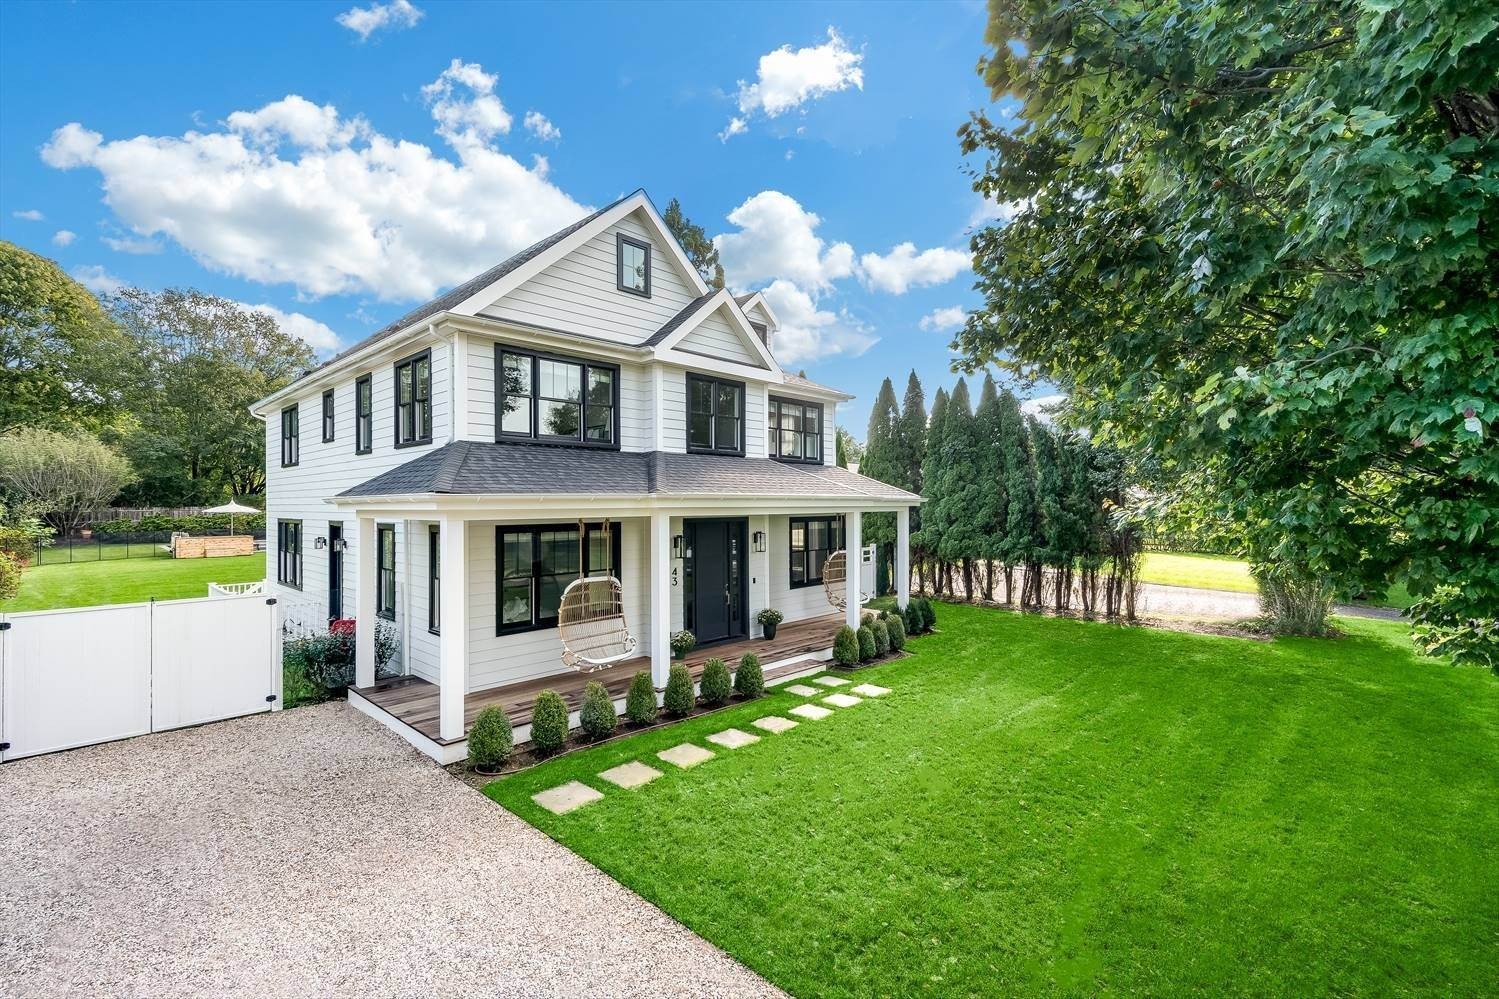 2. Single Family Home at Quintessential Hamptons Summer In Amagansett South 43 Hedges Lane, Amagansett, NY 11930